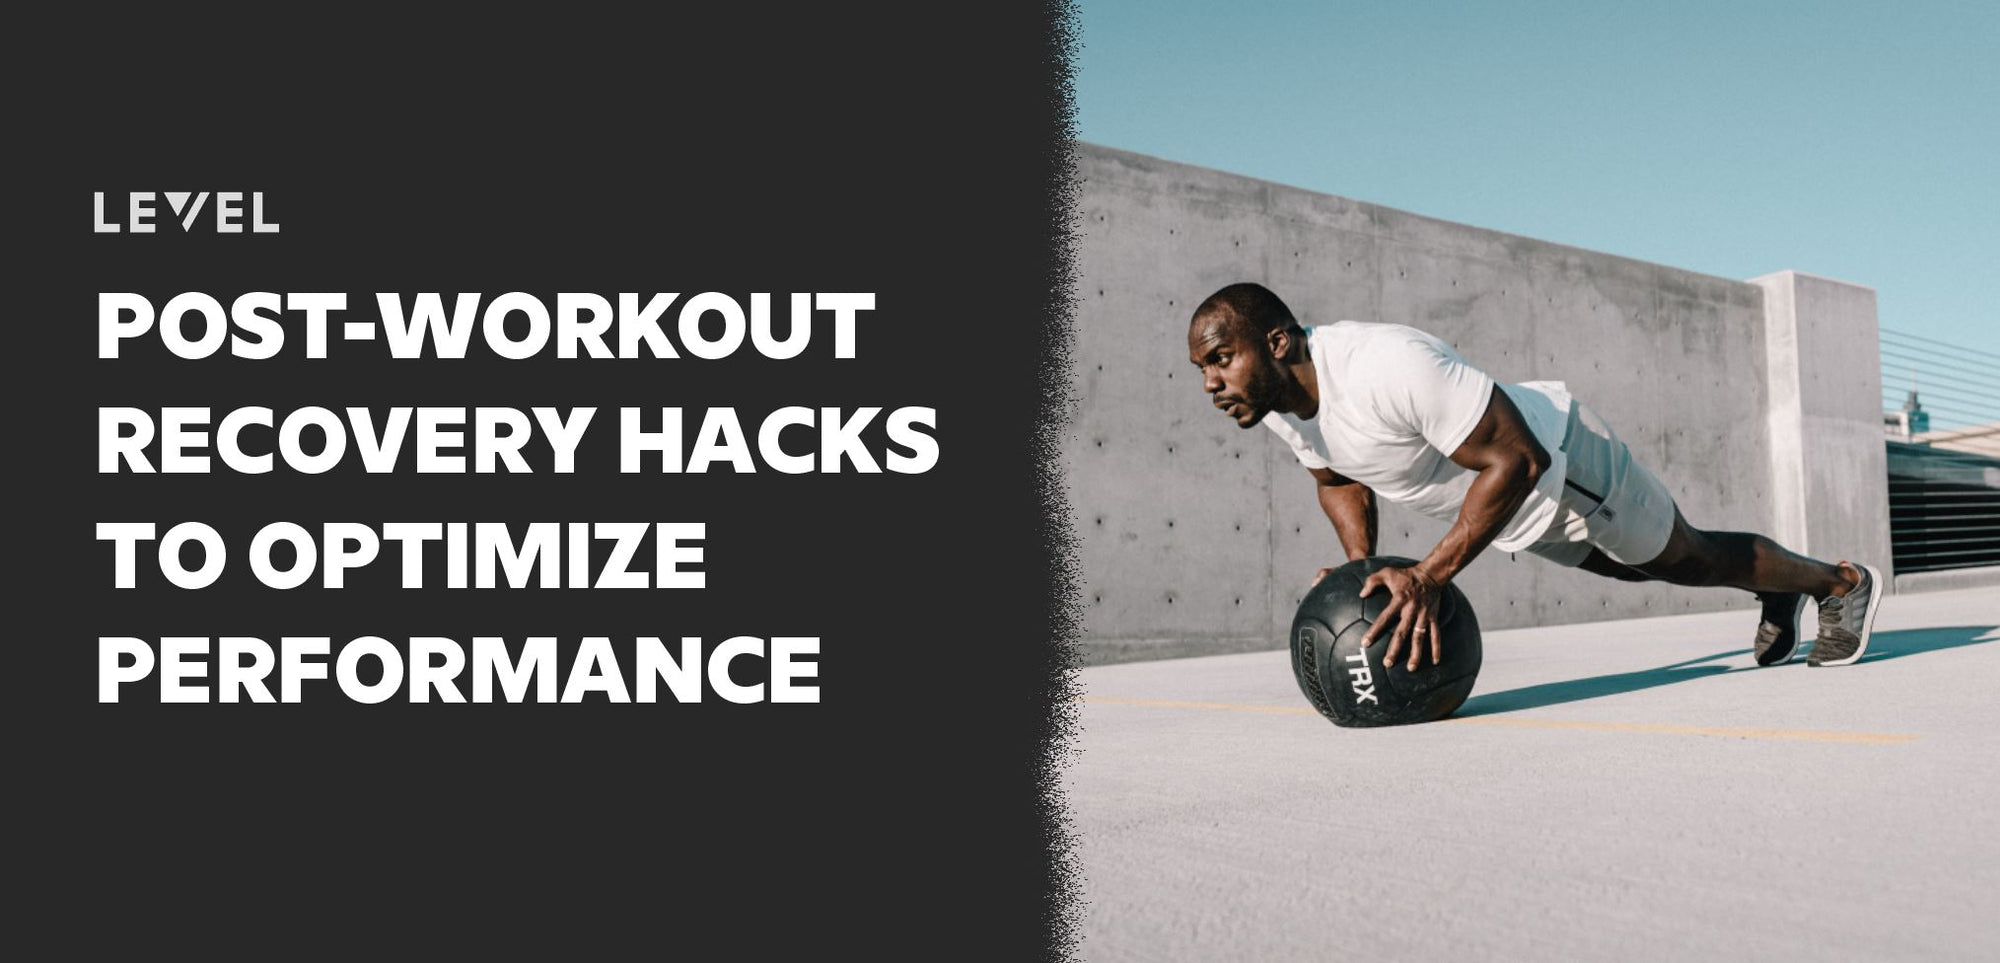 Post-Workout Recovery Hacks to Optimize Performance